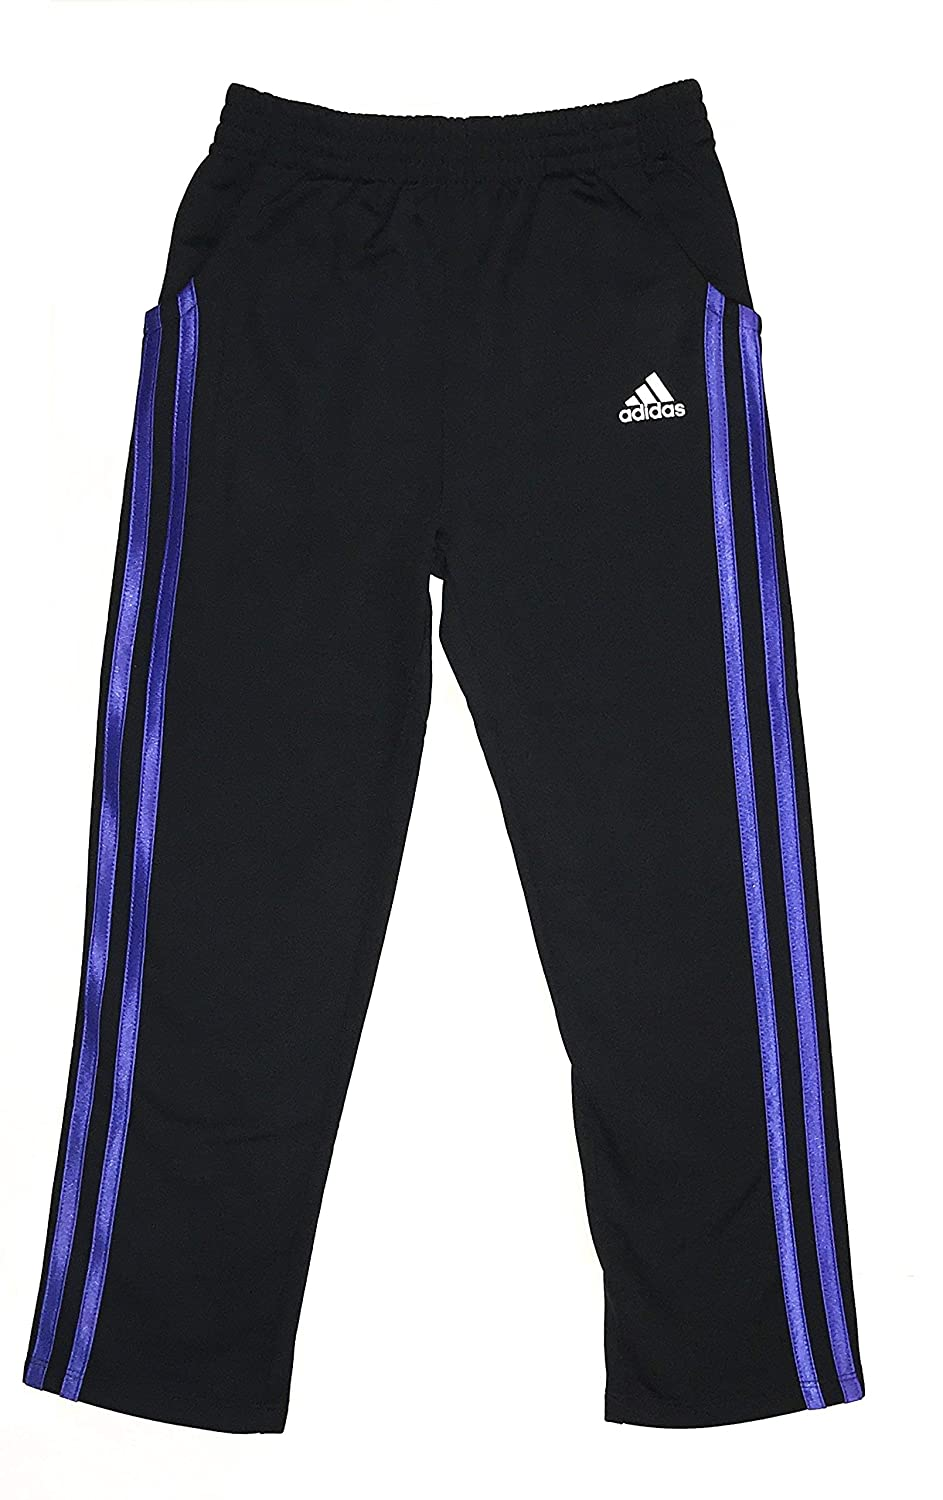 Adidas Girls Tricot Zip Jacket and Pant Set